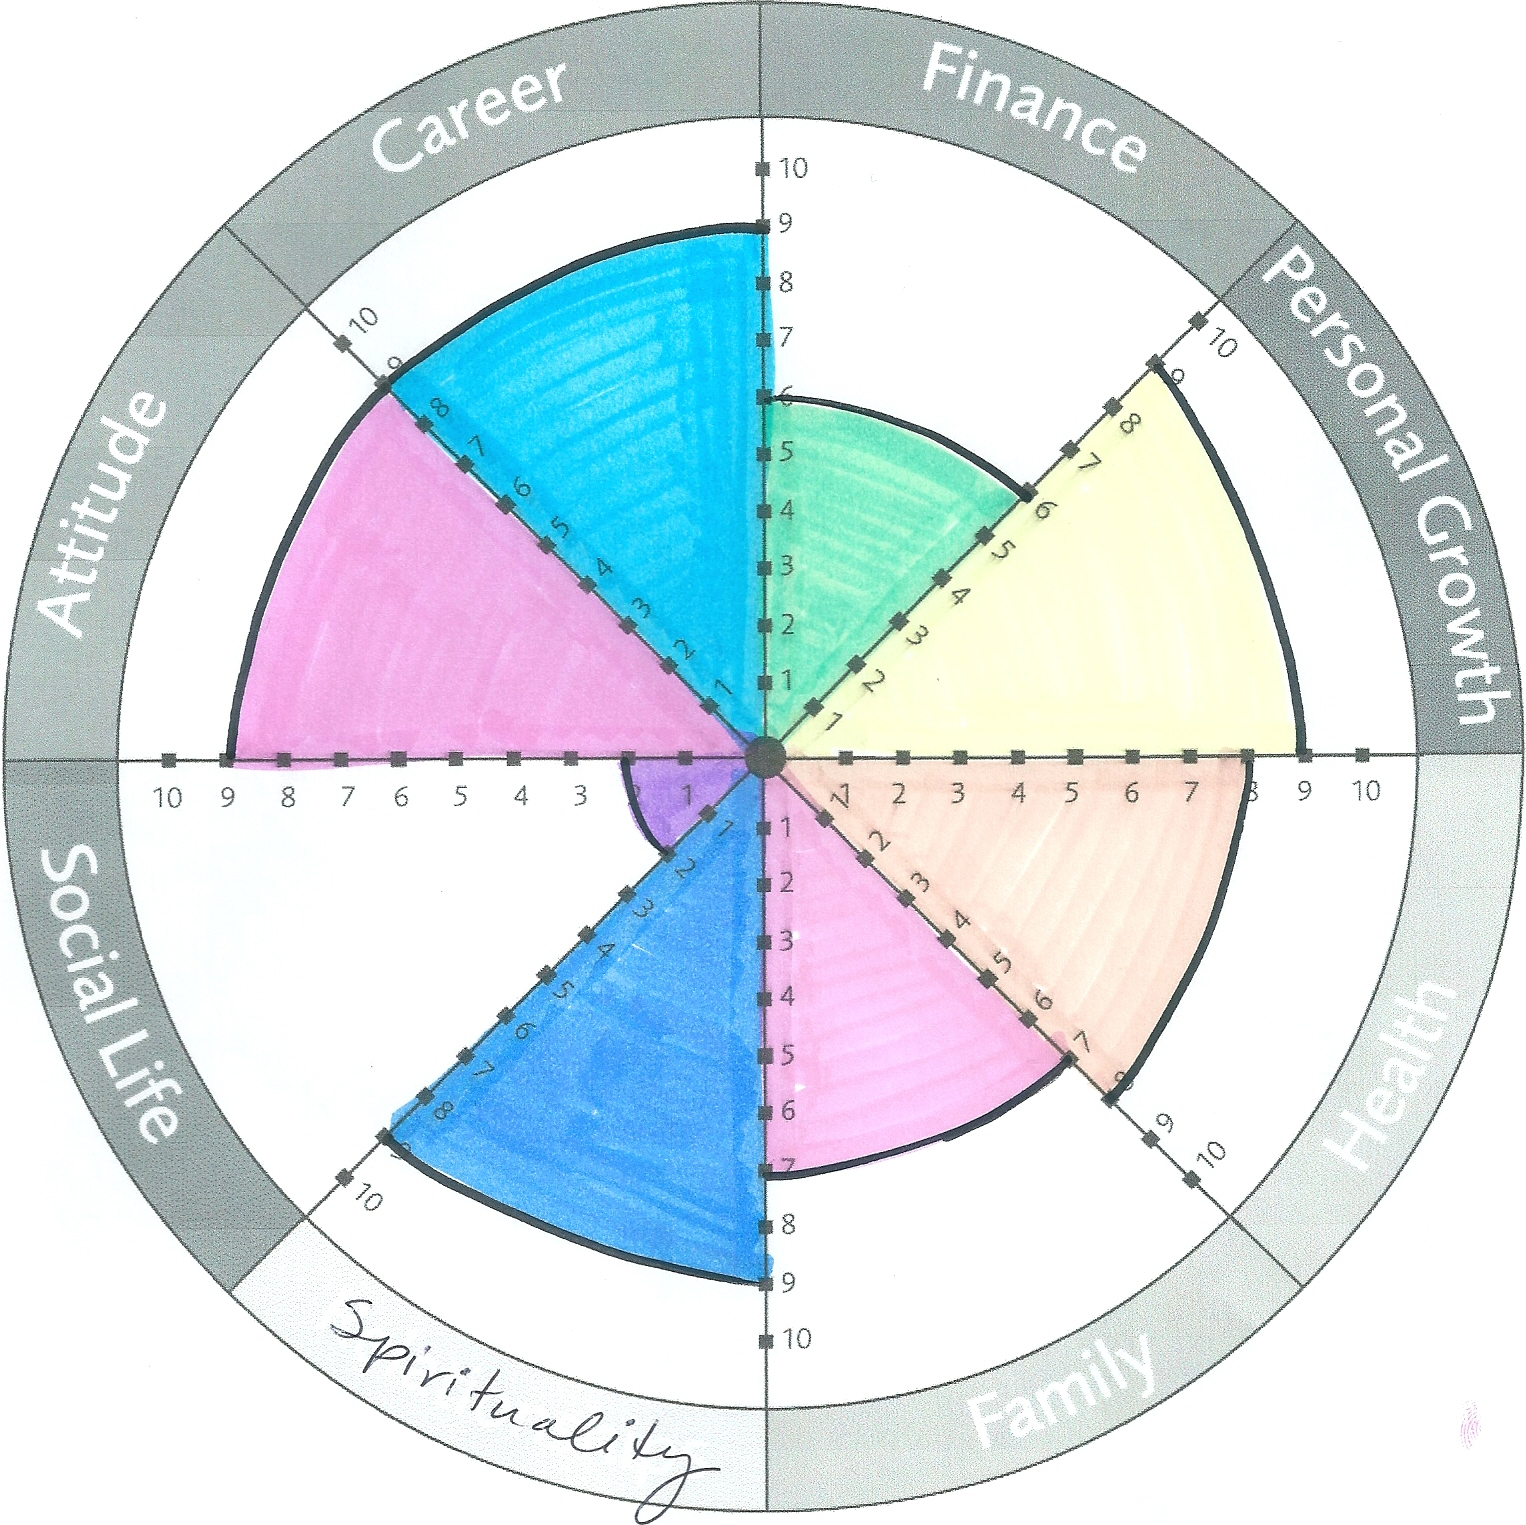 What Does Your Wheel of Life Look Life?